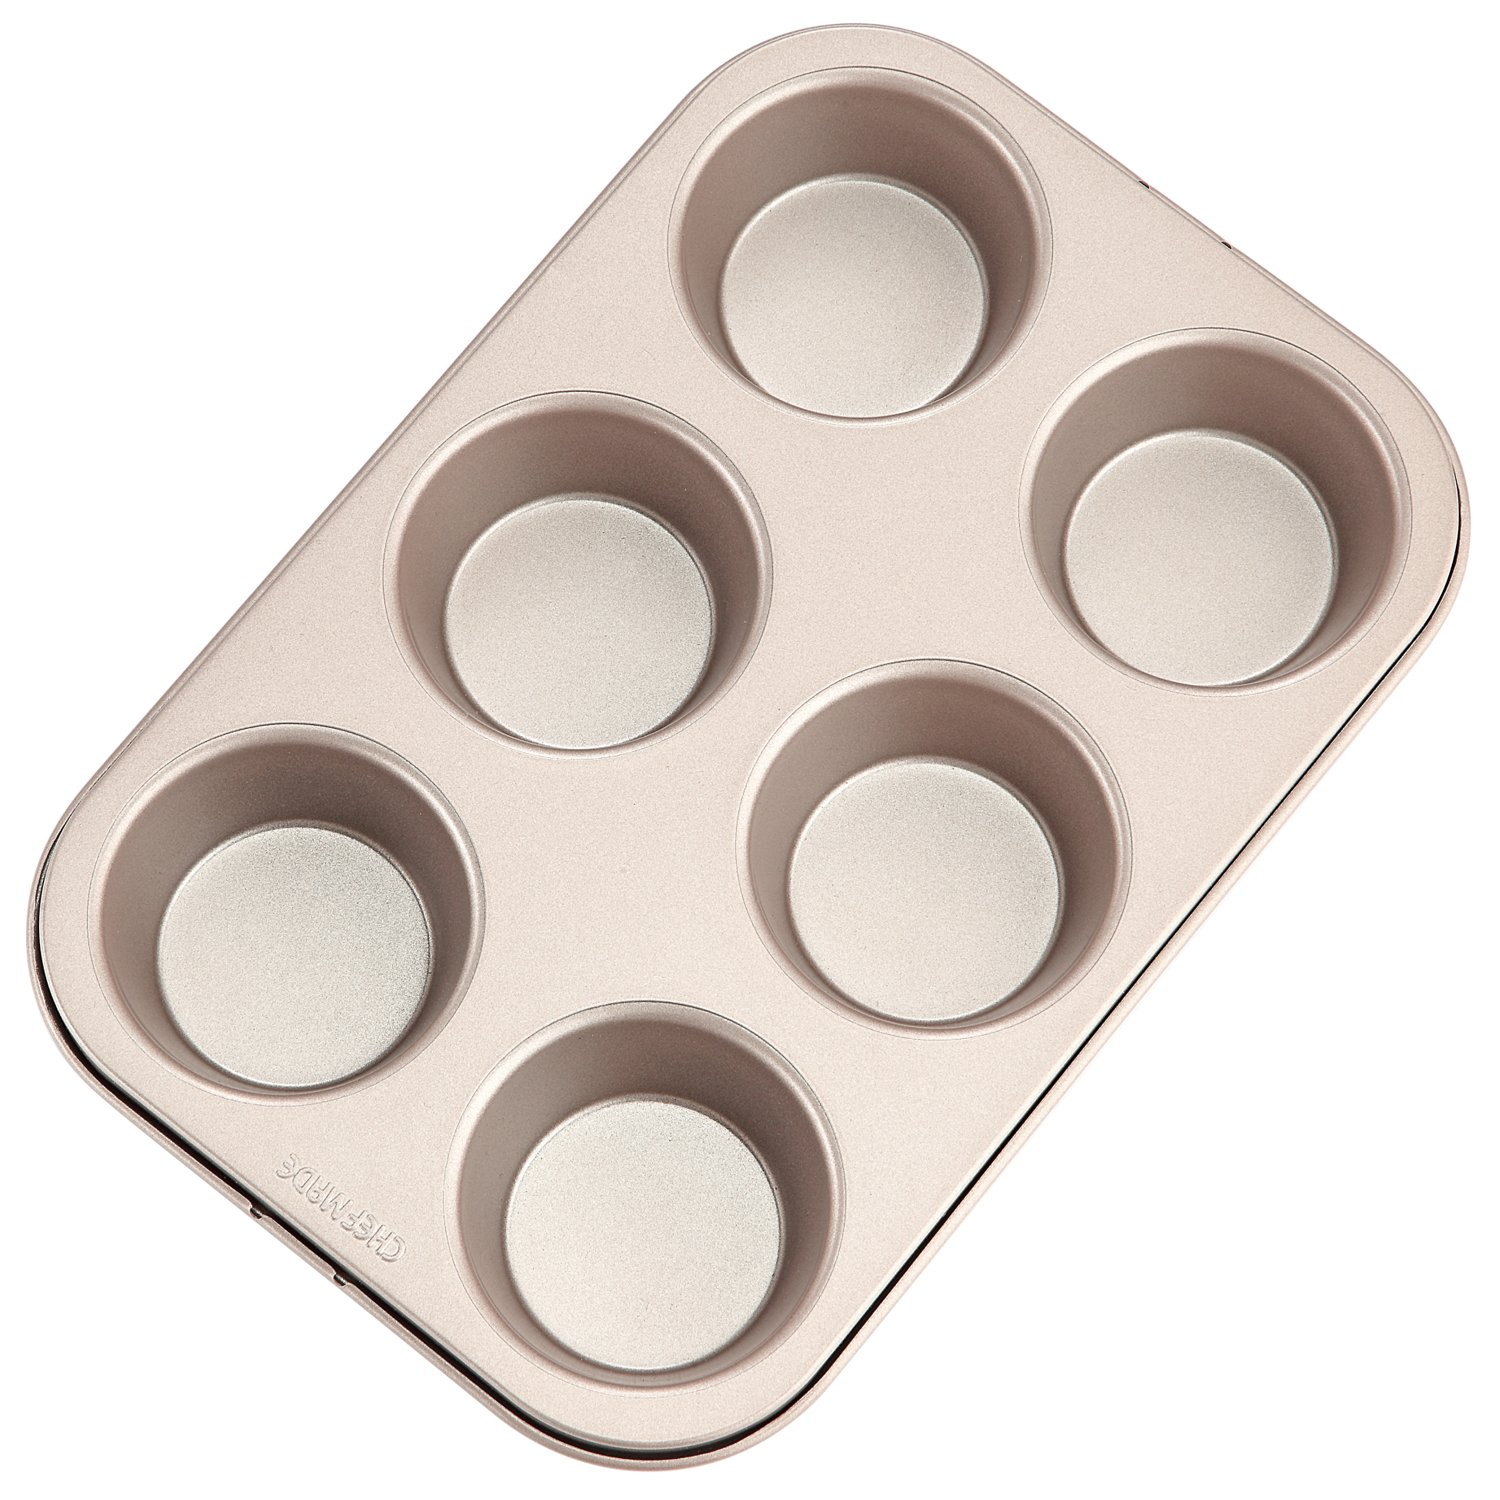 CHEFMADE Muffin Cake Pan, 6-Cavity Non-Stick Cupcake Bakeware, FDA Approved for Oven Baking (Champagne Gold)